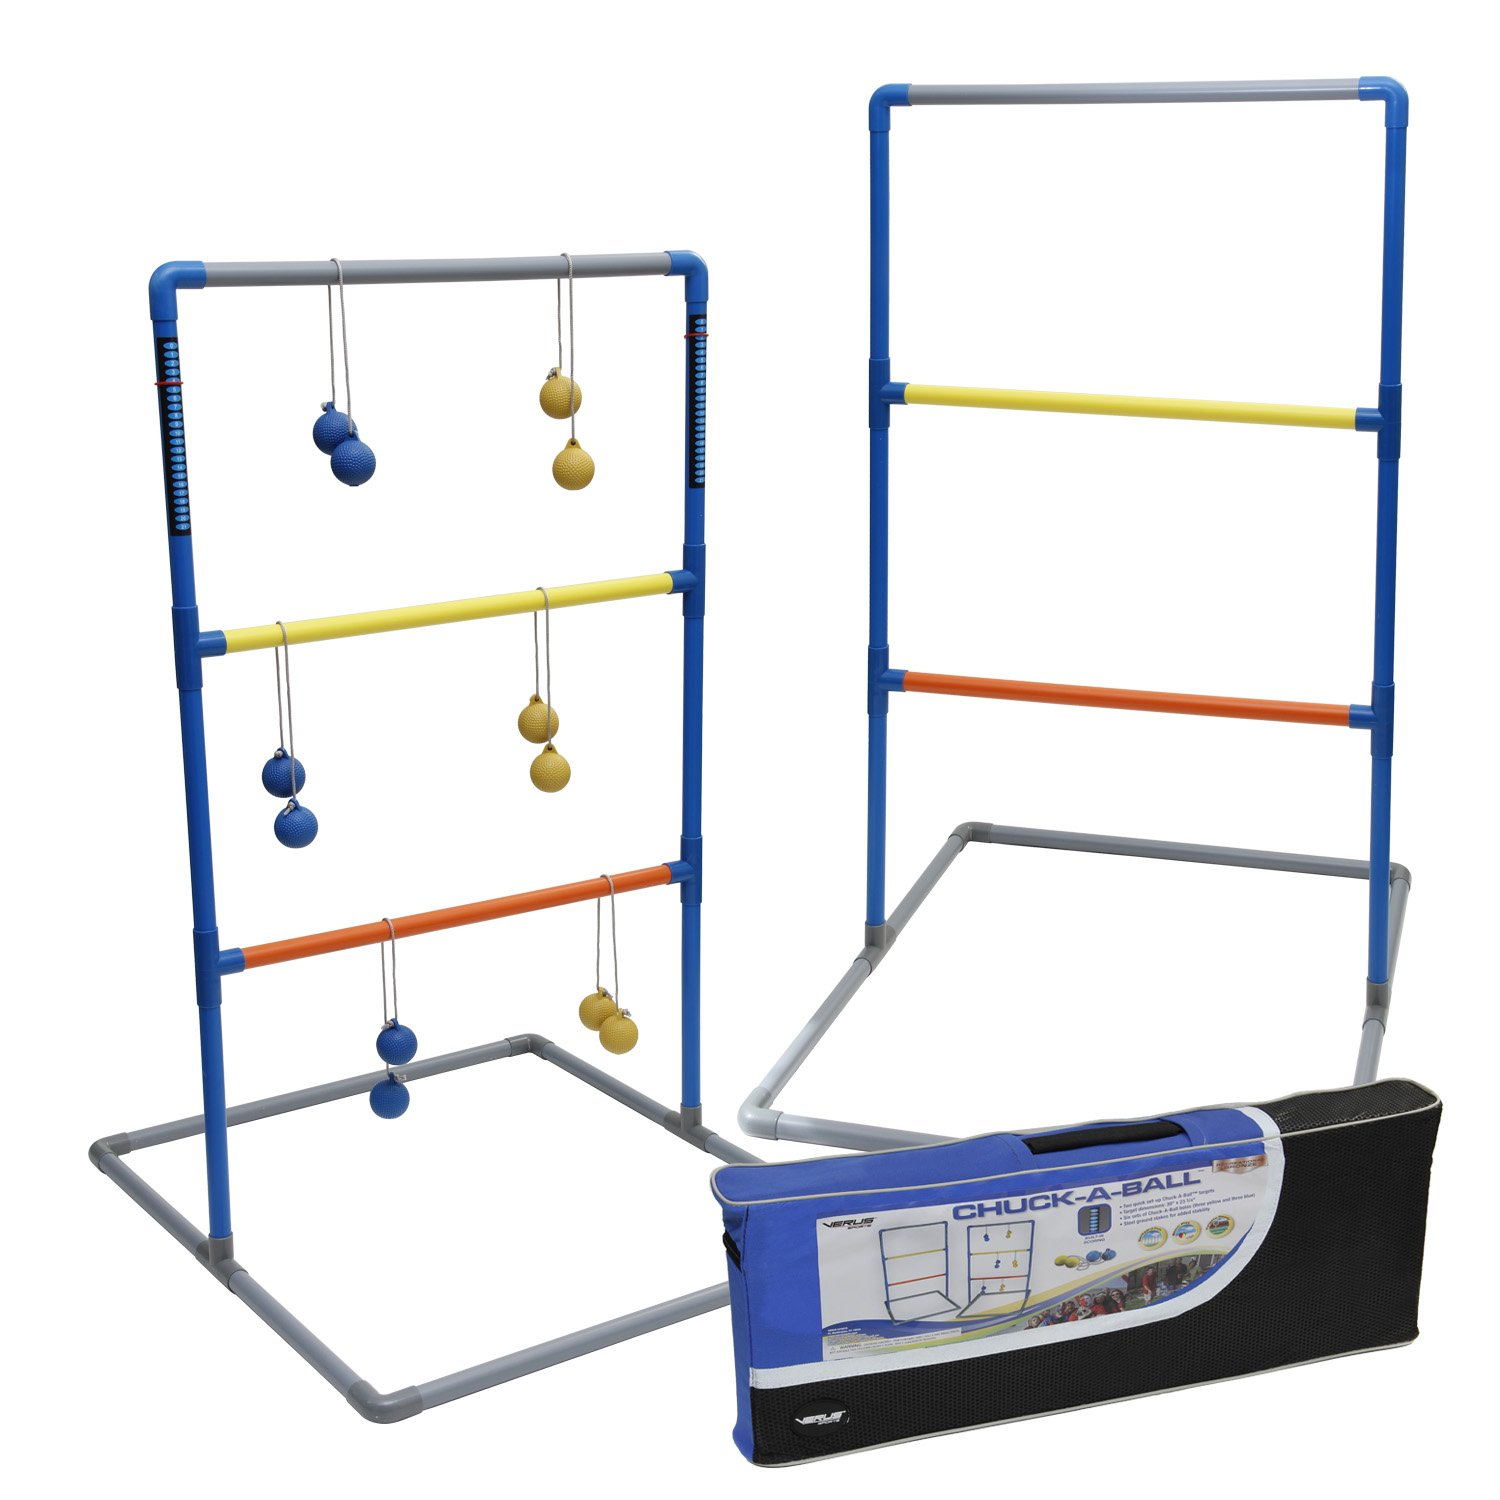 Verus Sports Ladder Ball Toss Game